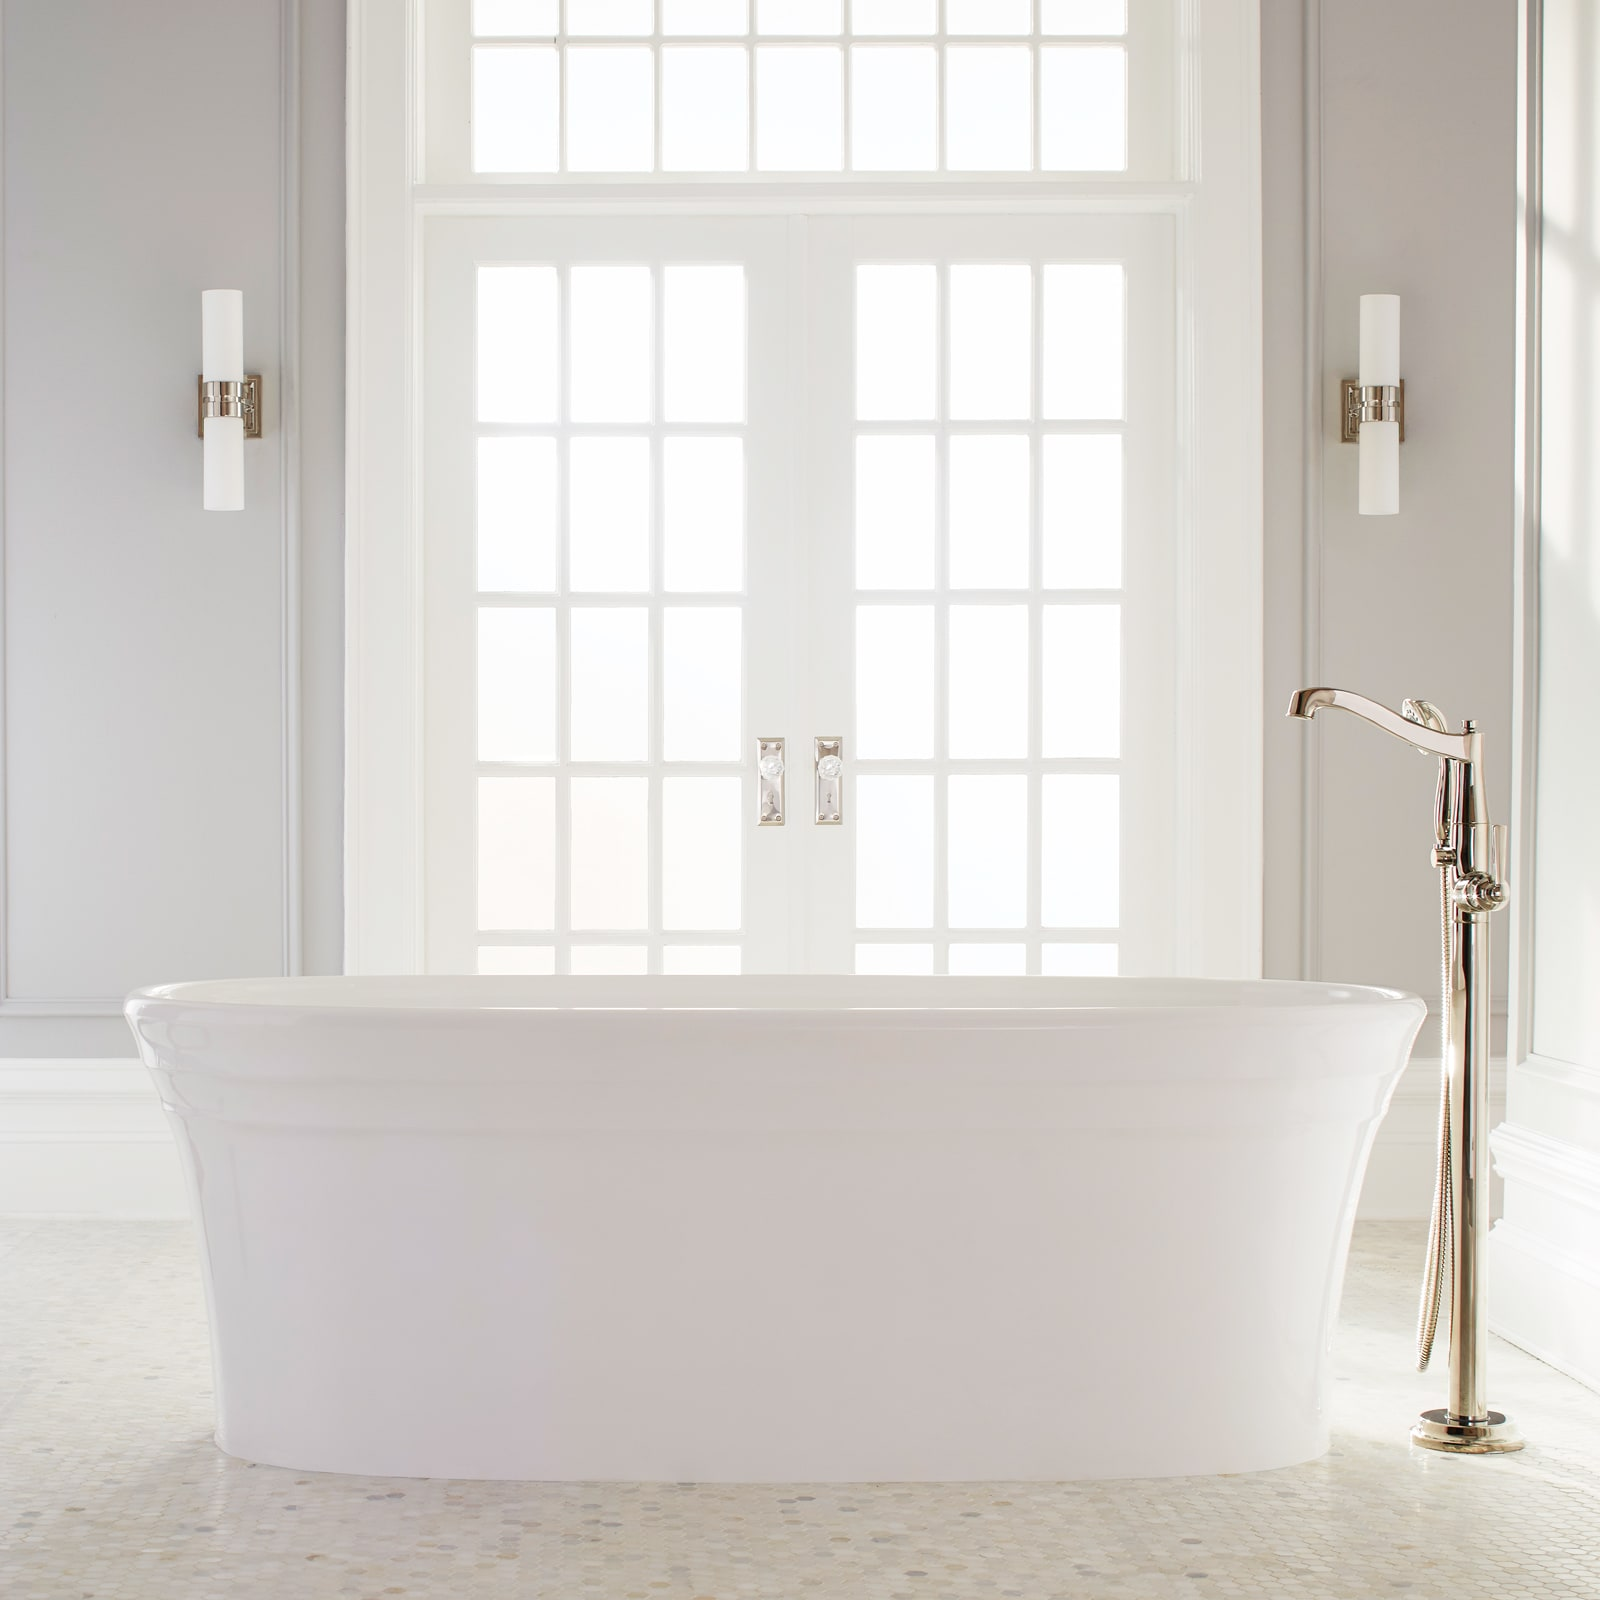 end west at ensuite bldg bay bc for english tubs double presales tub condos sale vancouver mirabelle listings davie mirabel vanity street condo